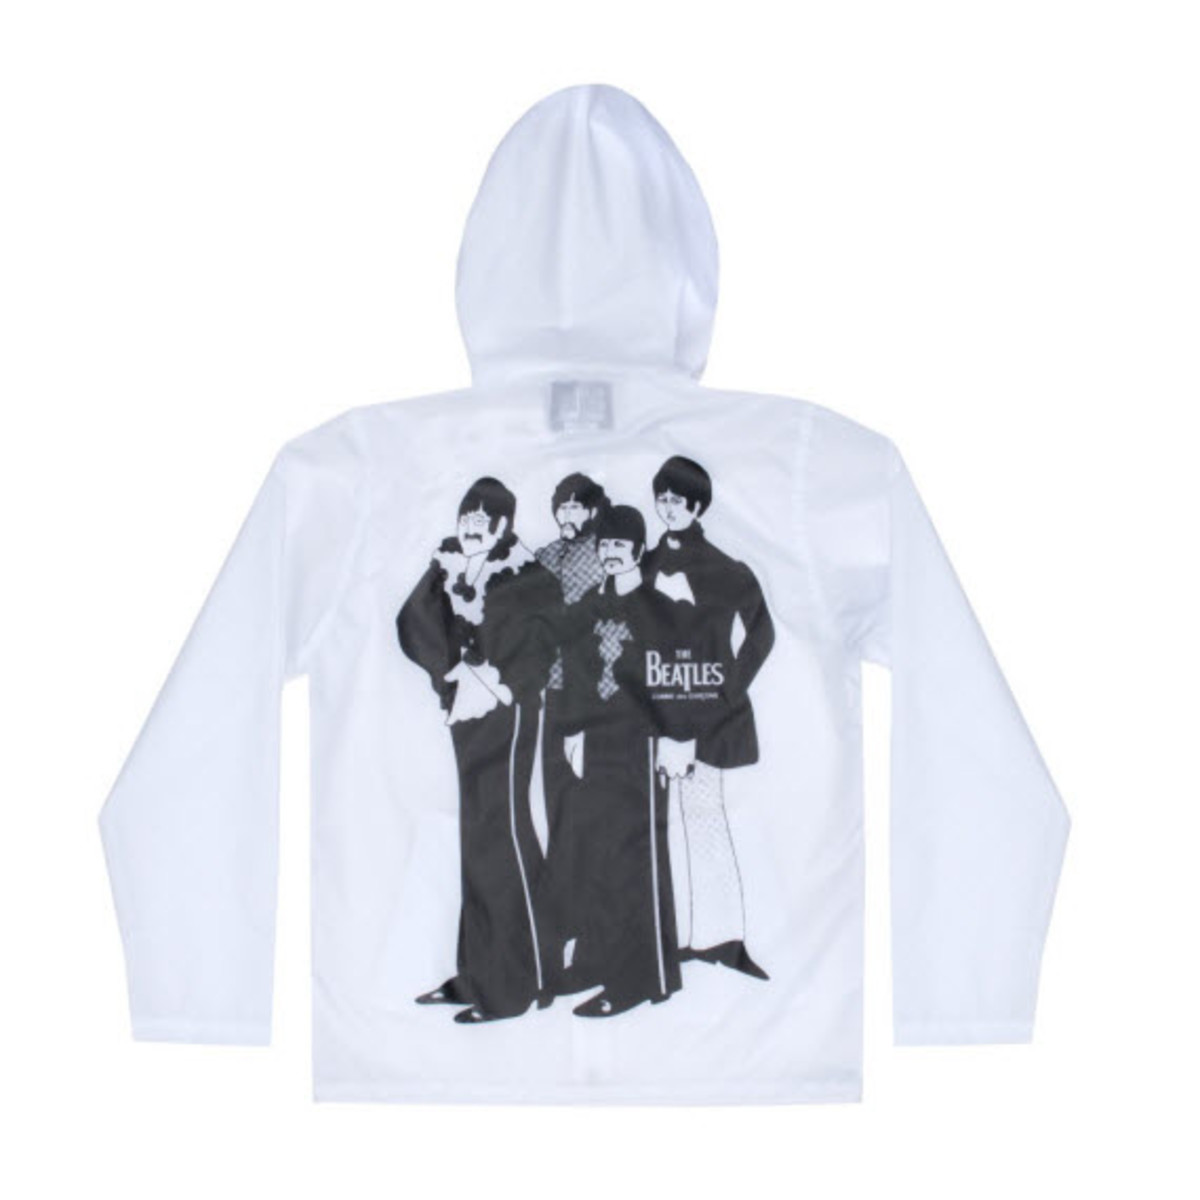 comme-des-garcons-x-the-beatles-the-beatles-springsummer-2013-capsule-collection-4